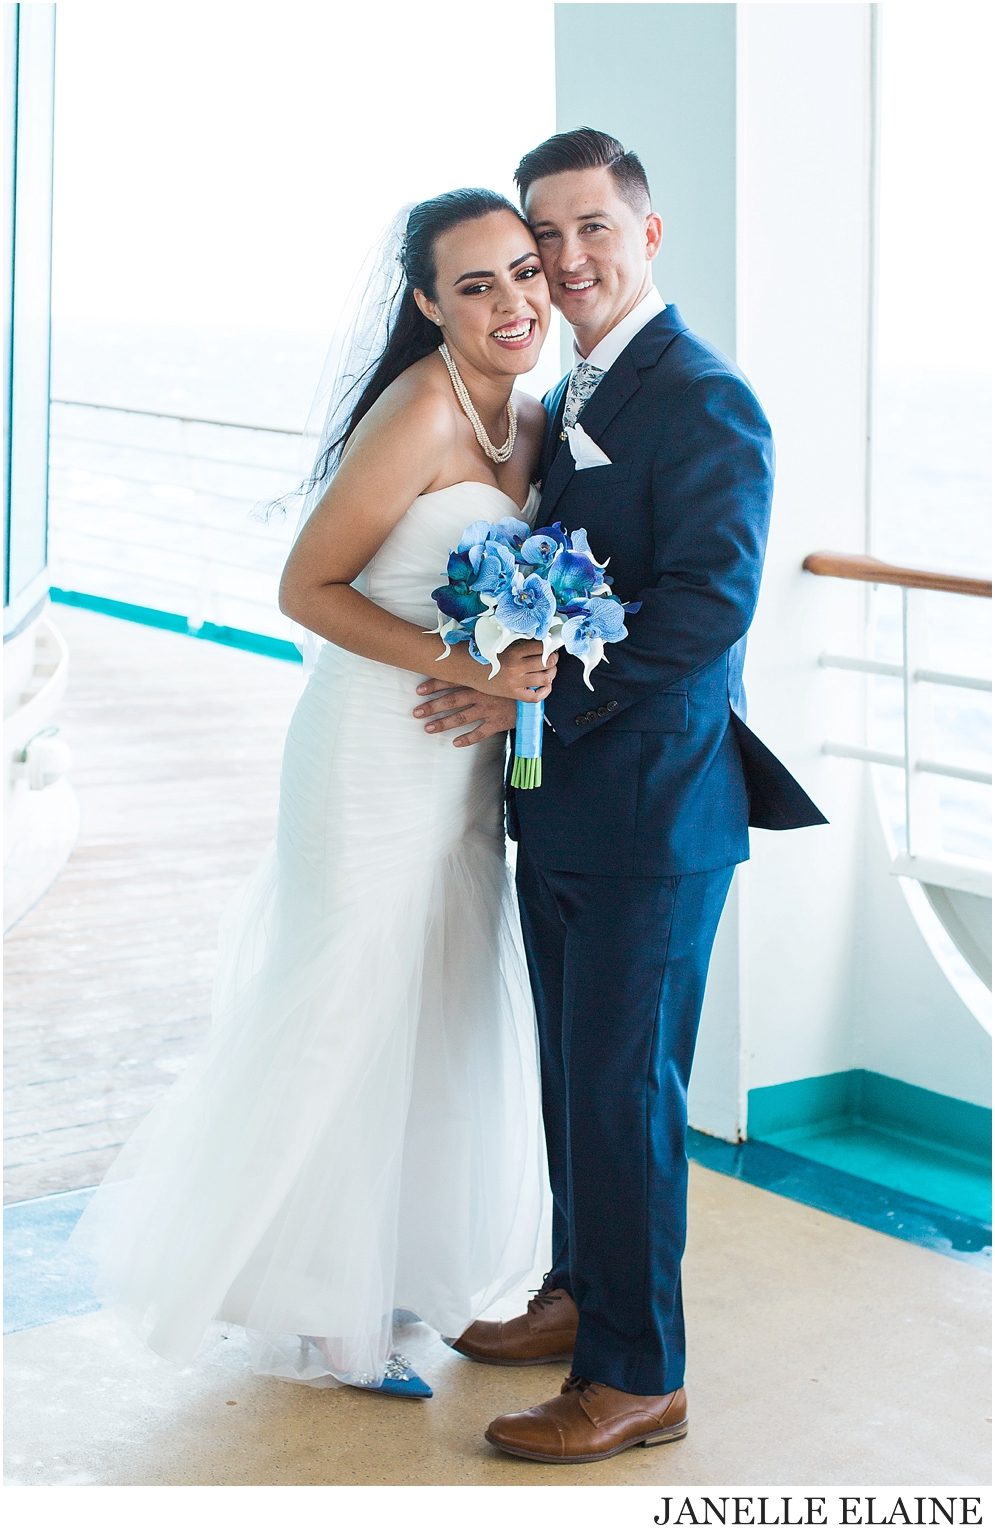 white wedding-royal caribbean-janelle elaine photography-160.jpg